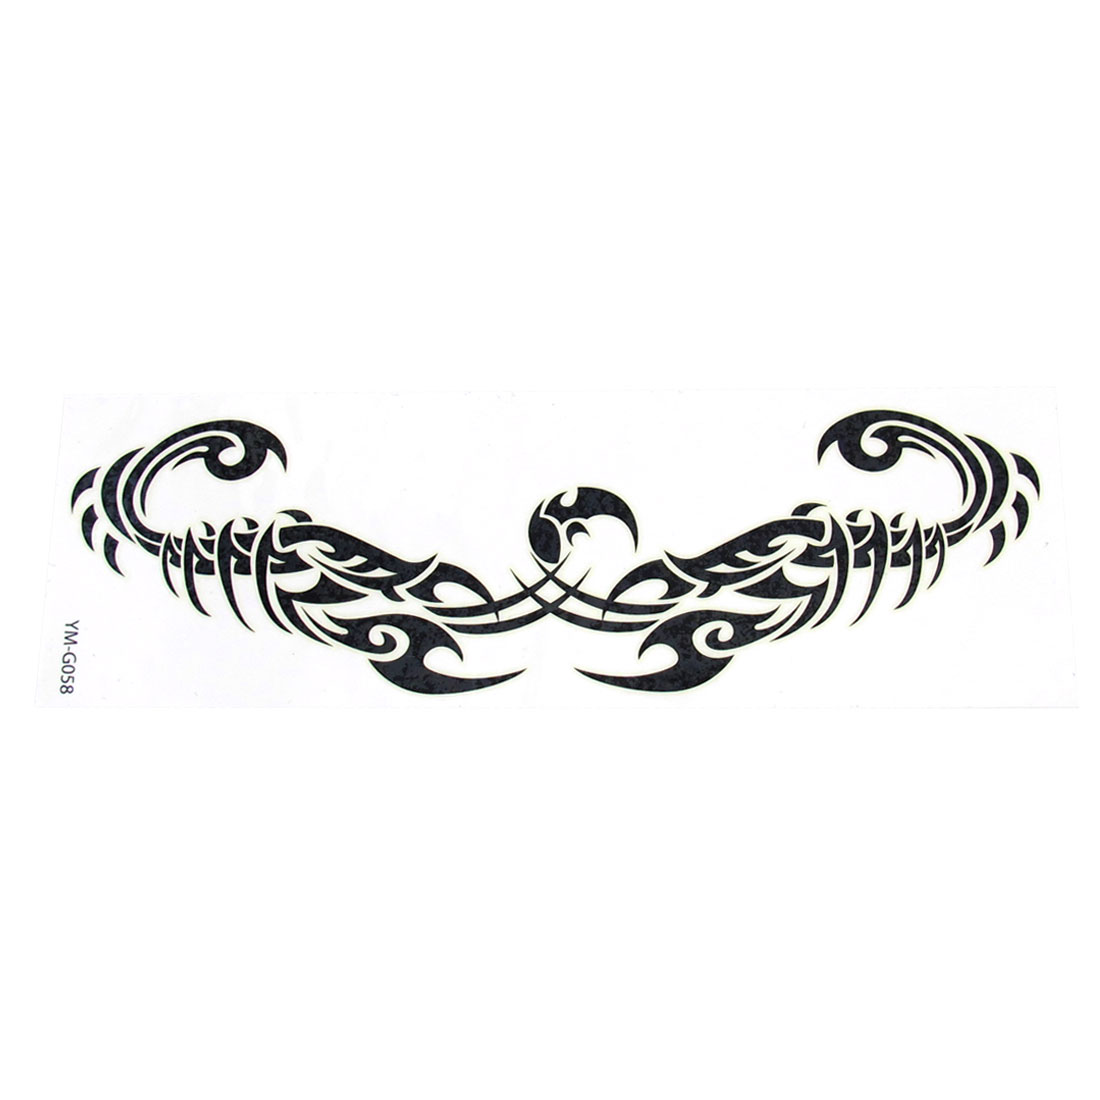 Self Adhesive Scorpion Pattern Temporary Transfer Tattoos Sticker Beauty Tool